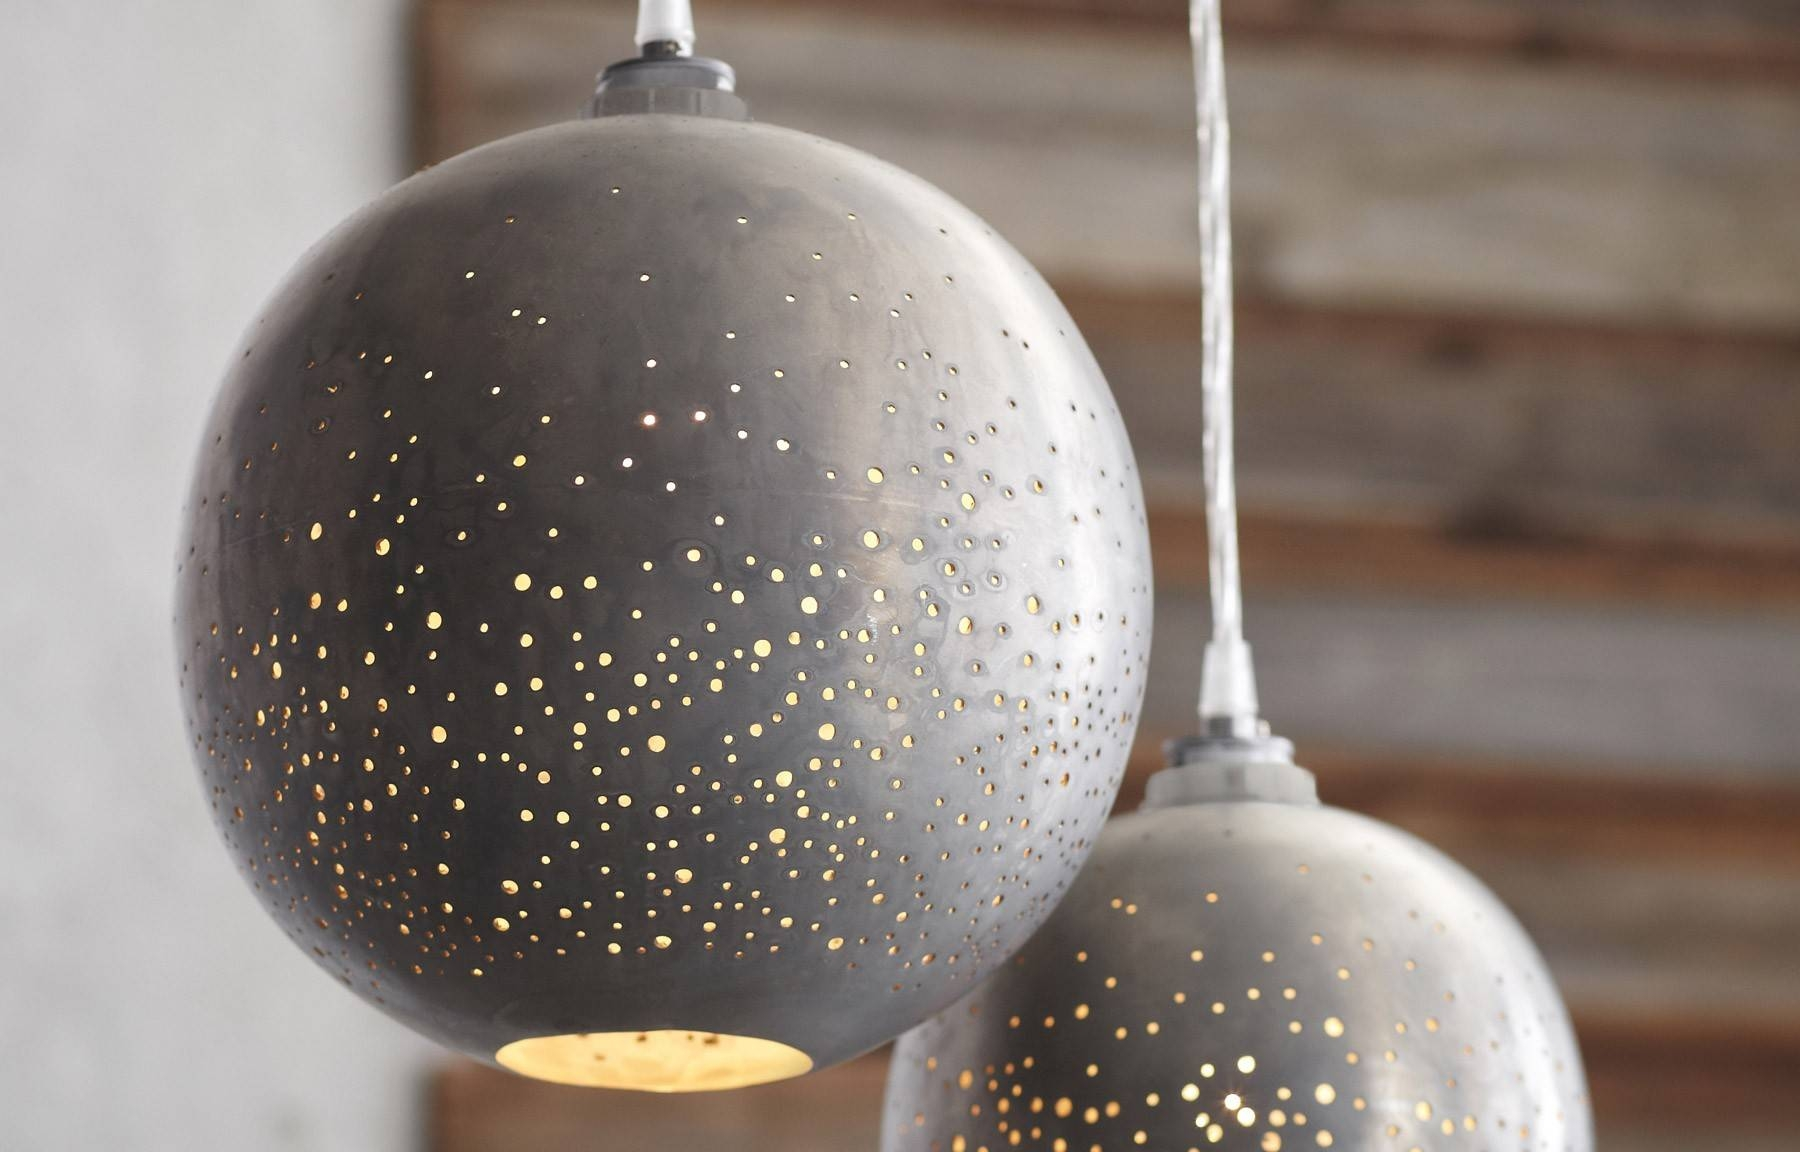 Constellation Nursery Decor – Project Nursery Intended For Pendant Lights For Nursery (View 4 of 15)